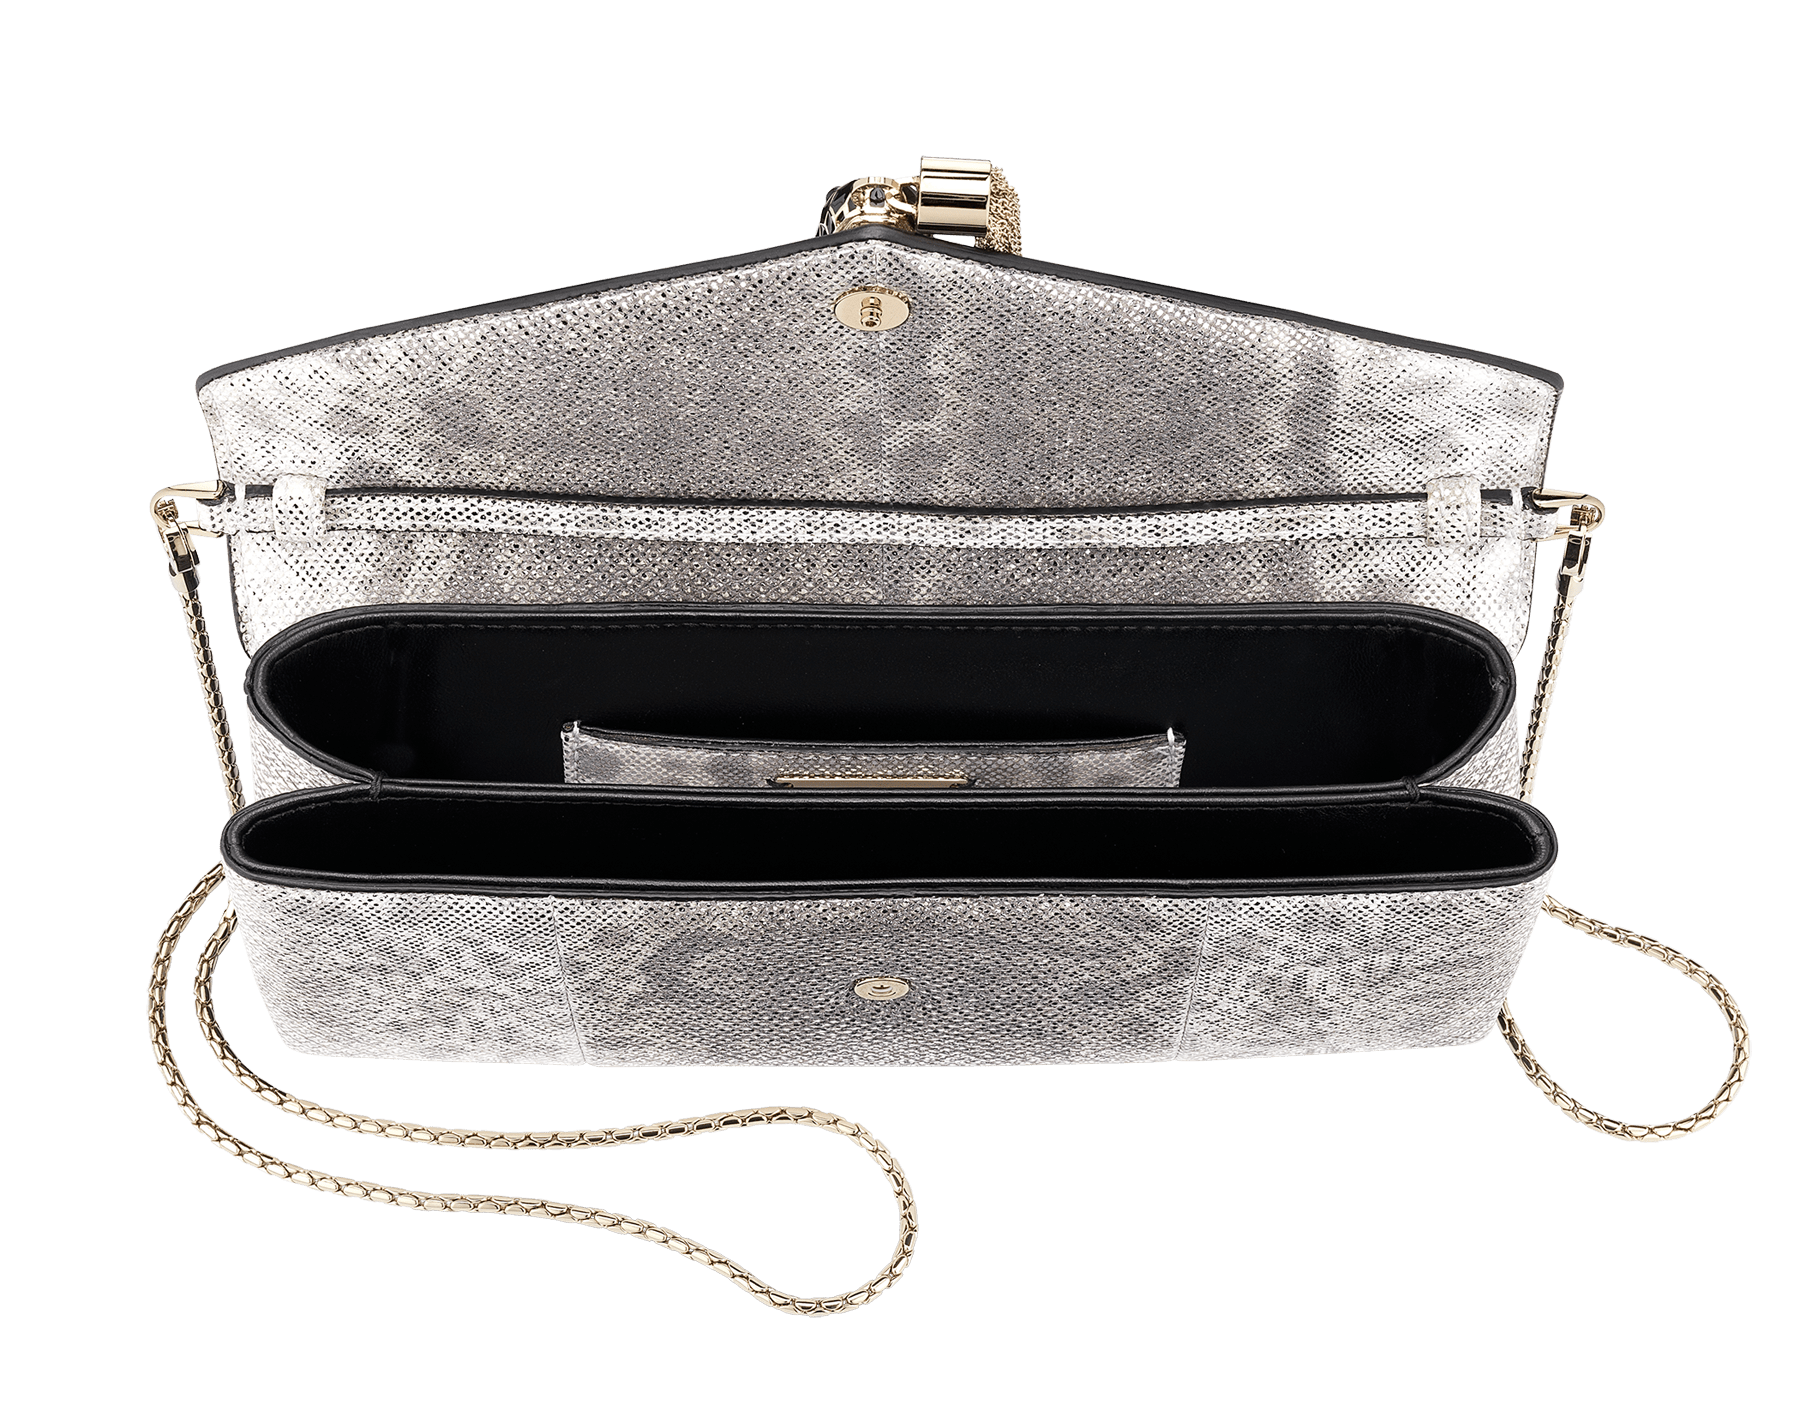 """Serpenti"" evening clutch bag in white agate metallic karung skin. Iconic snakehead stud closure with tassel in light gold plated brass enriched with shiny black and white agate enamel and black onyx eyes. 289004 image 4"